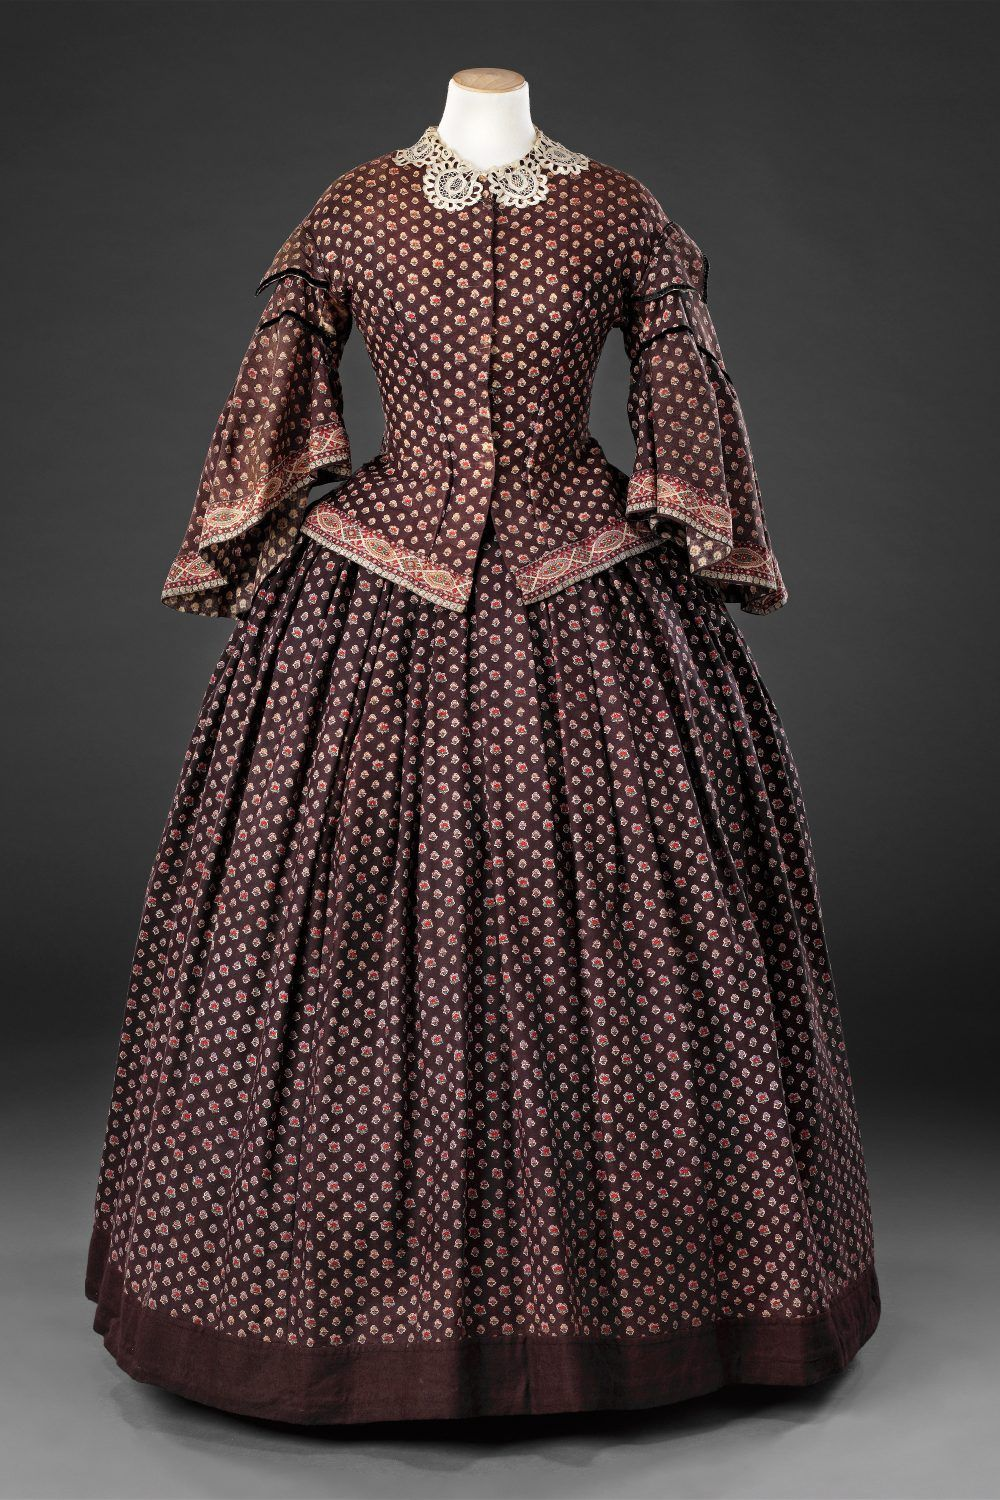 Dress Mid 1850s John Bright Collection Dresses 1800s